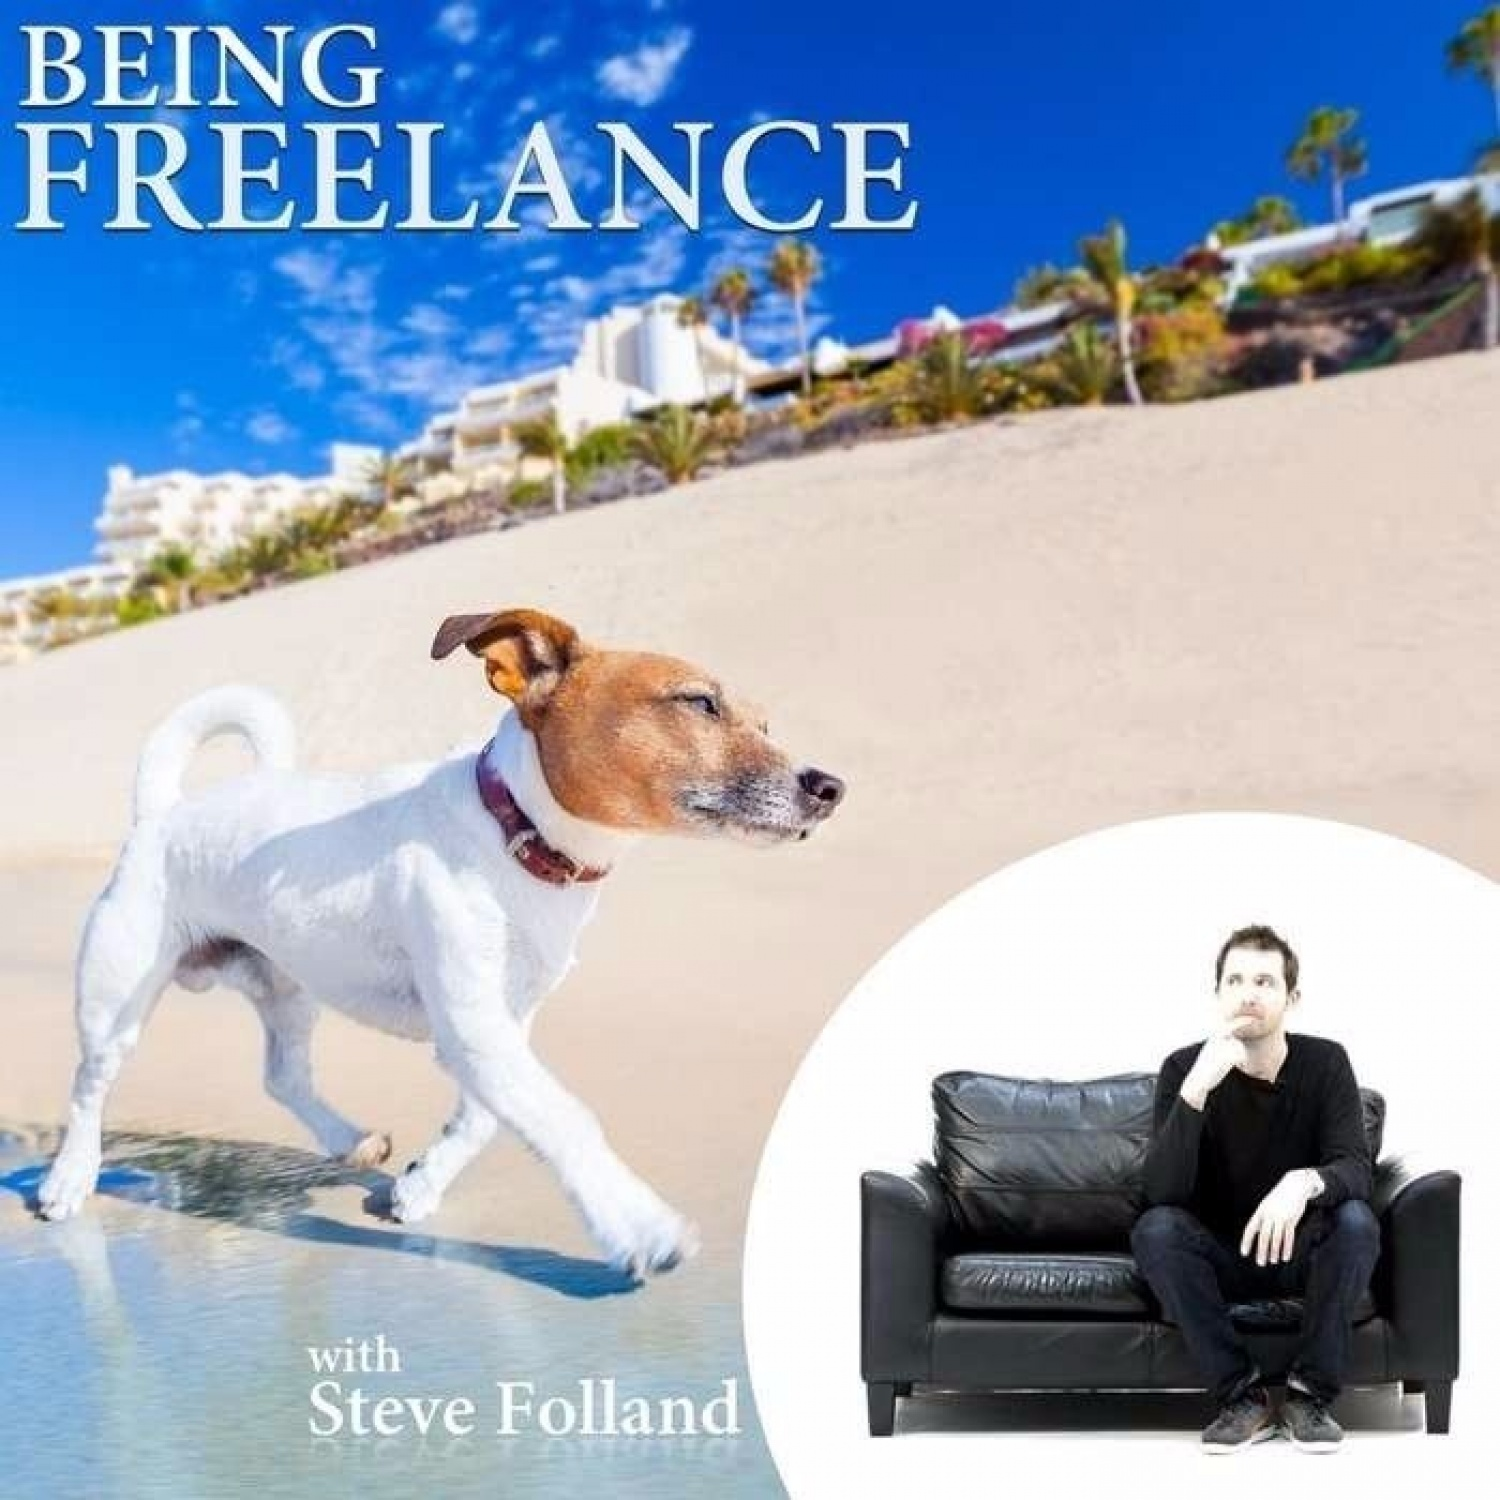 "<div style=""text-align: center;""><strong>Being Freelance - A Podcast About Freelancing</strong></div>"